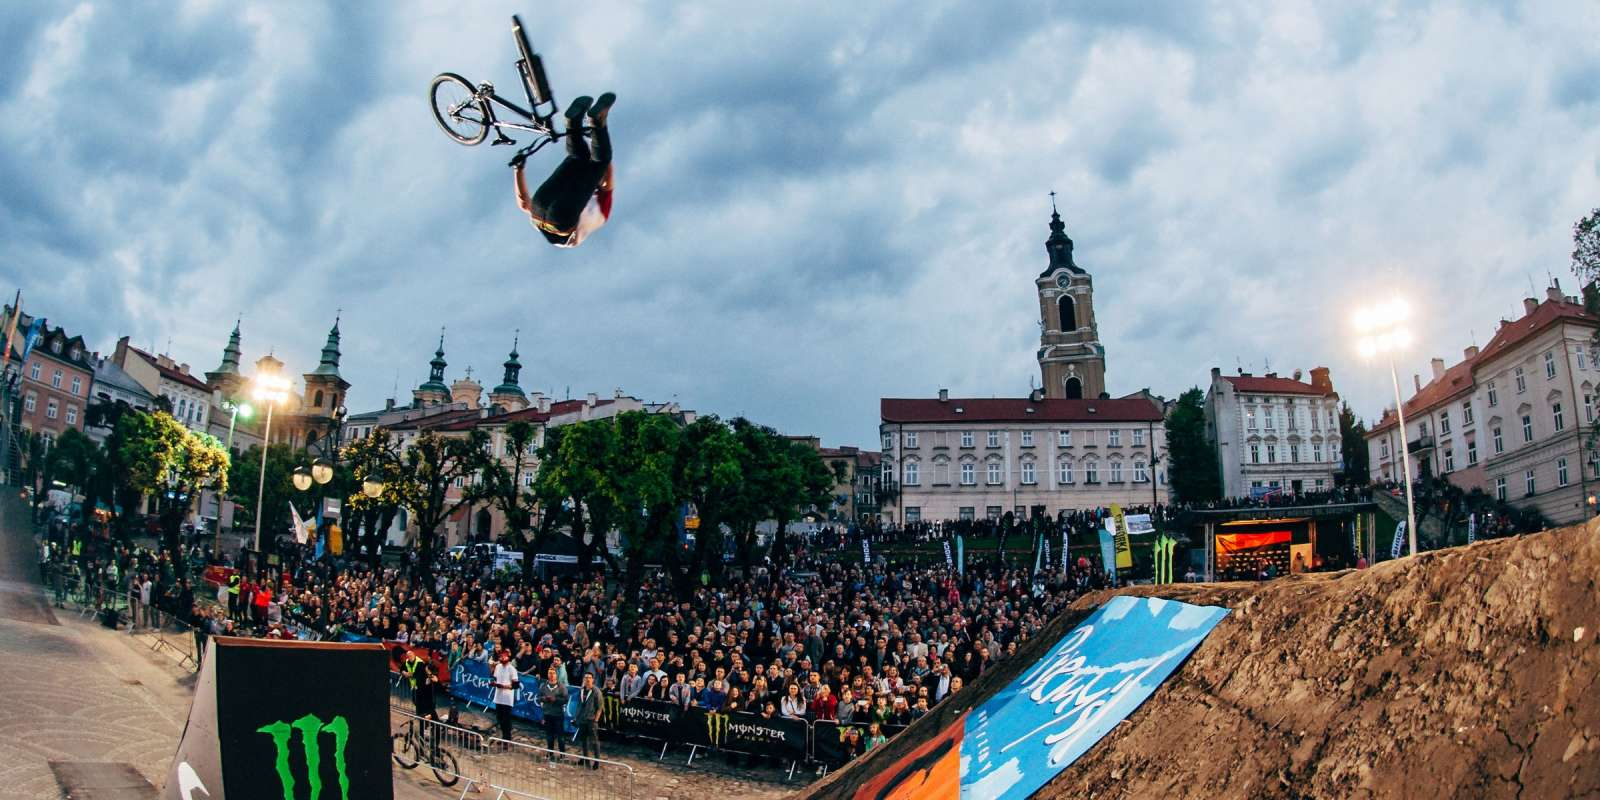 MTB dirt jumping contest action at Bike Town Przemysl 2016